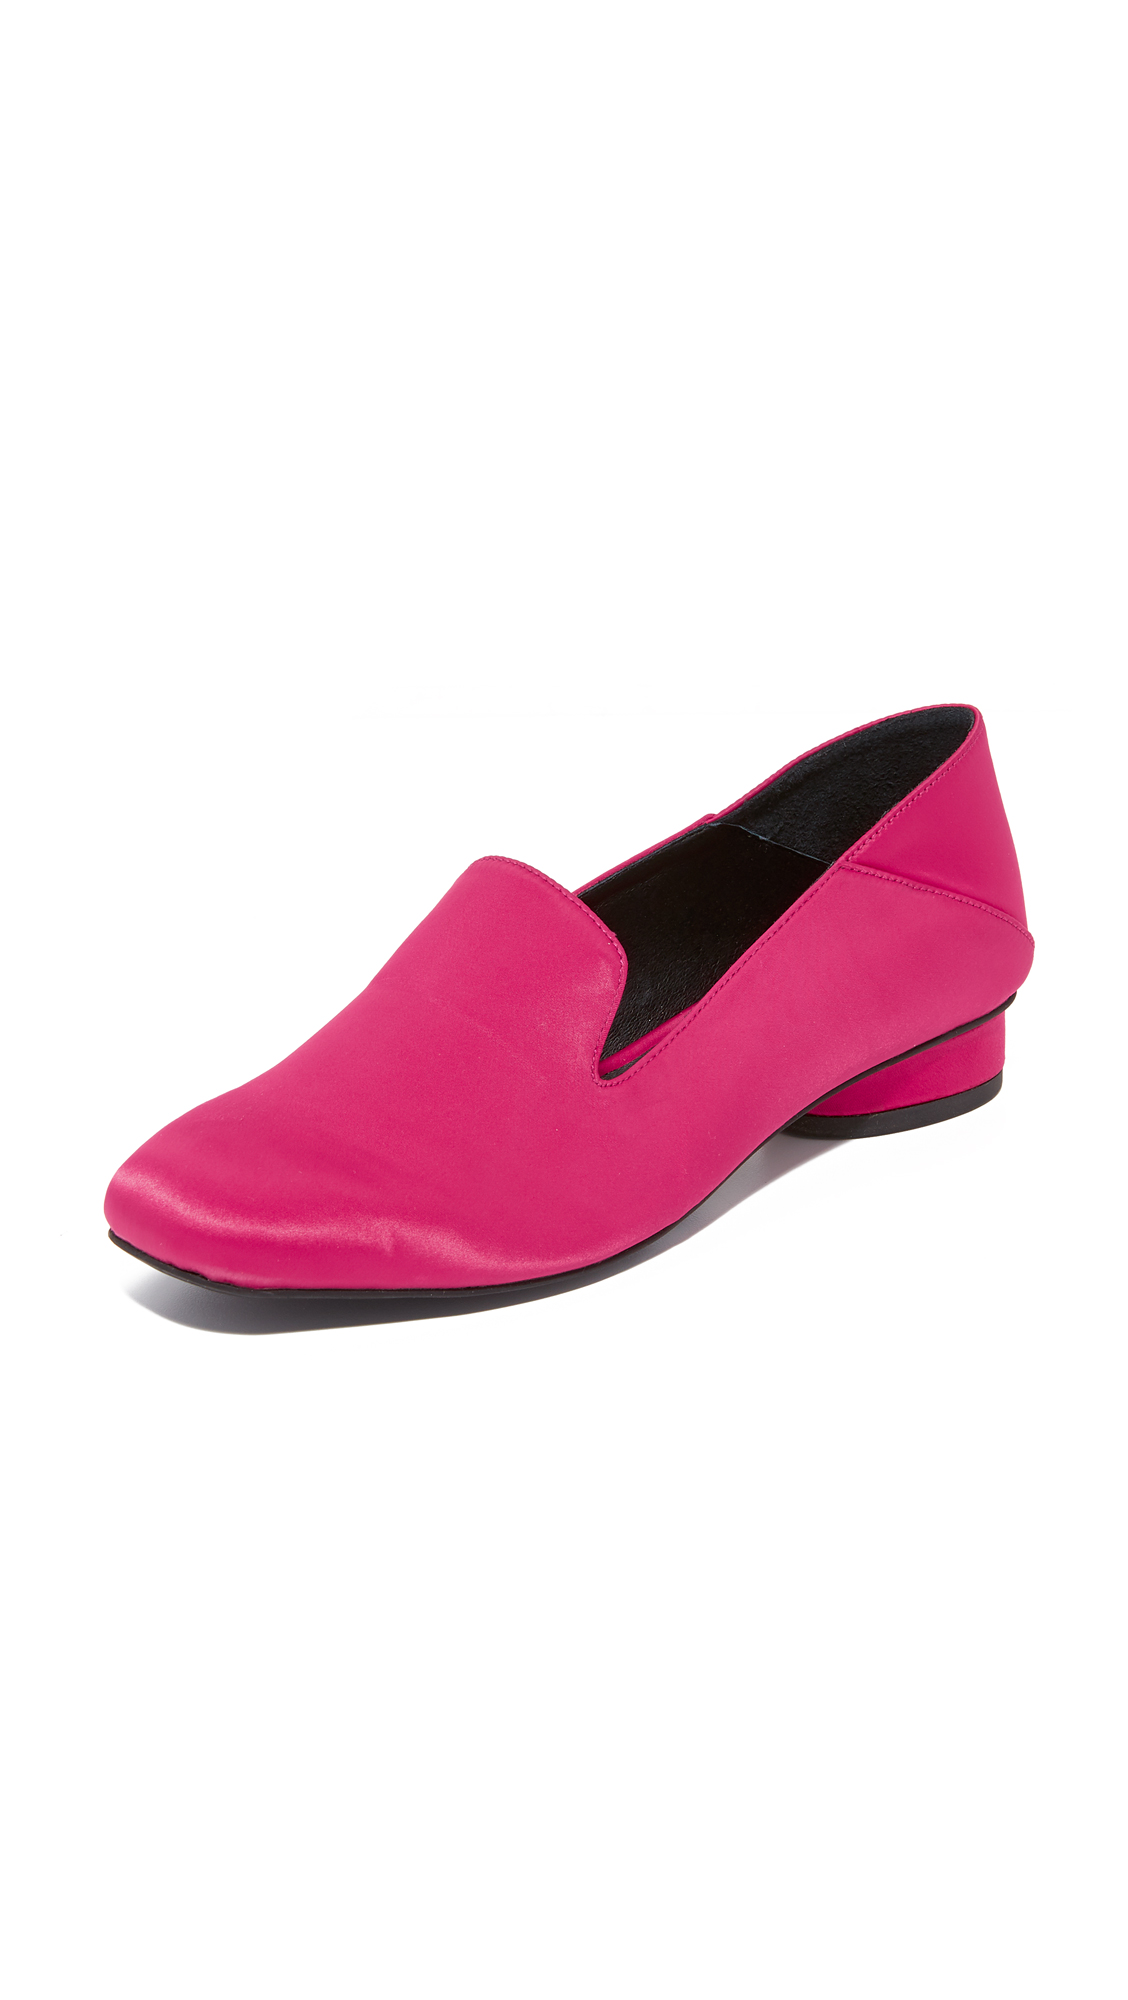 Jeffrey Campbell Symphony Step Down Loafers - Fuchsia